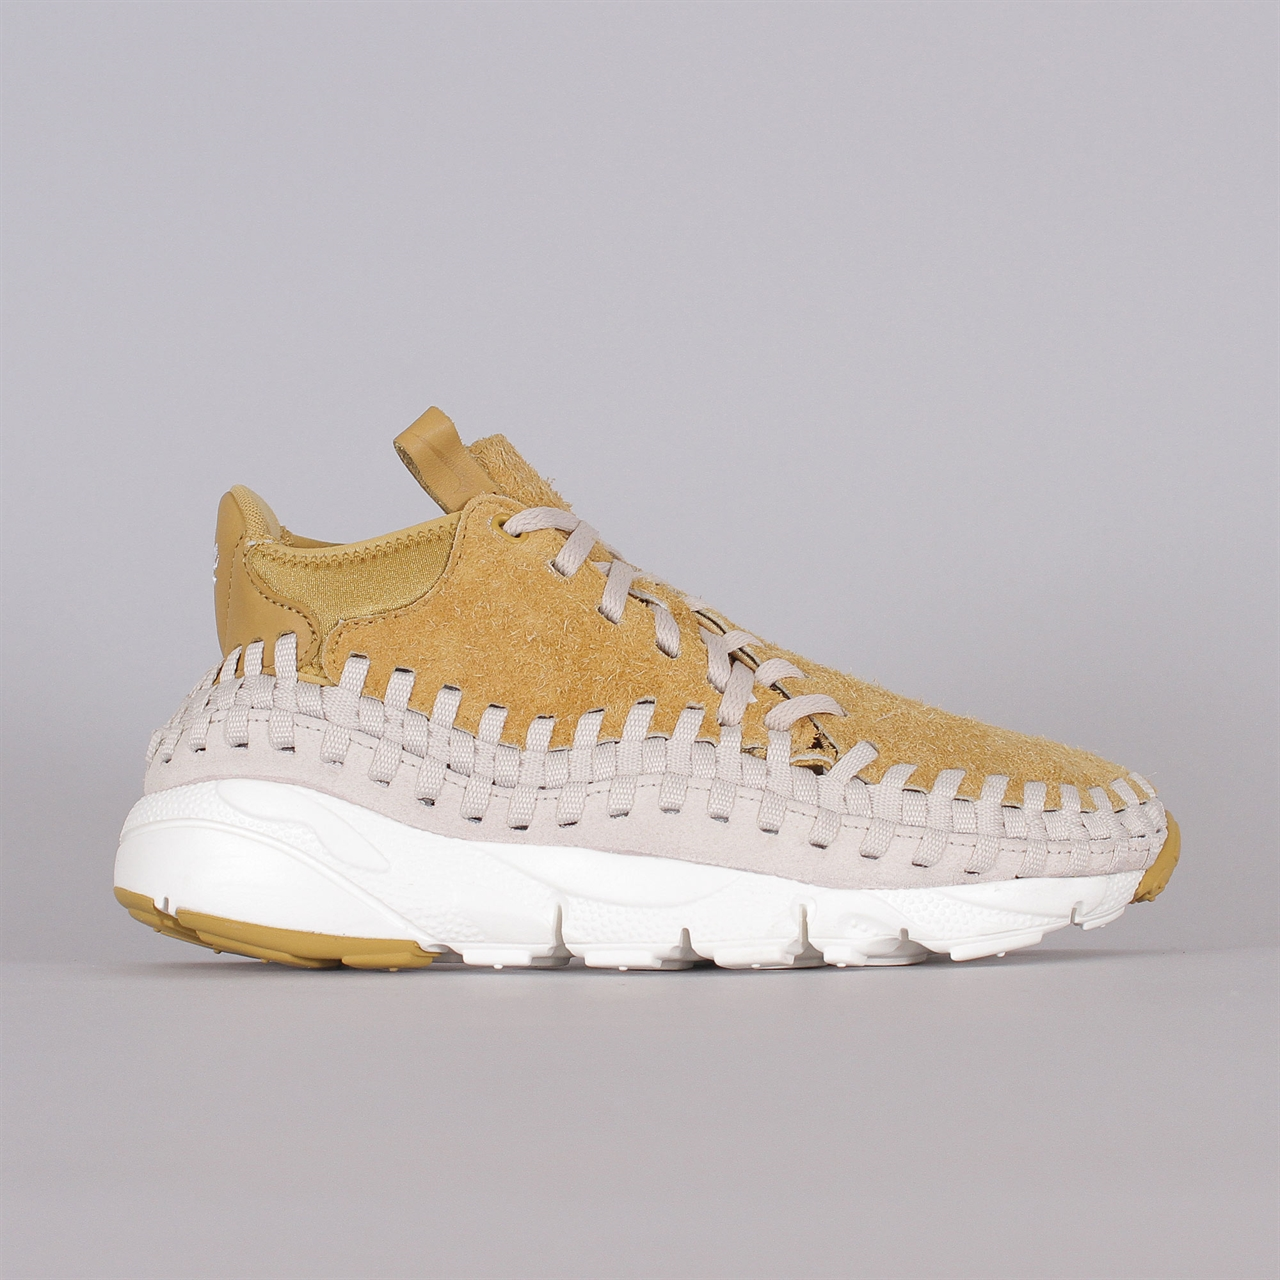 the best attitude 3451a 9f8cc Nike Sportswear Air Footscape Woven Chukka QS (913929 ... - Shelta